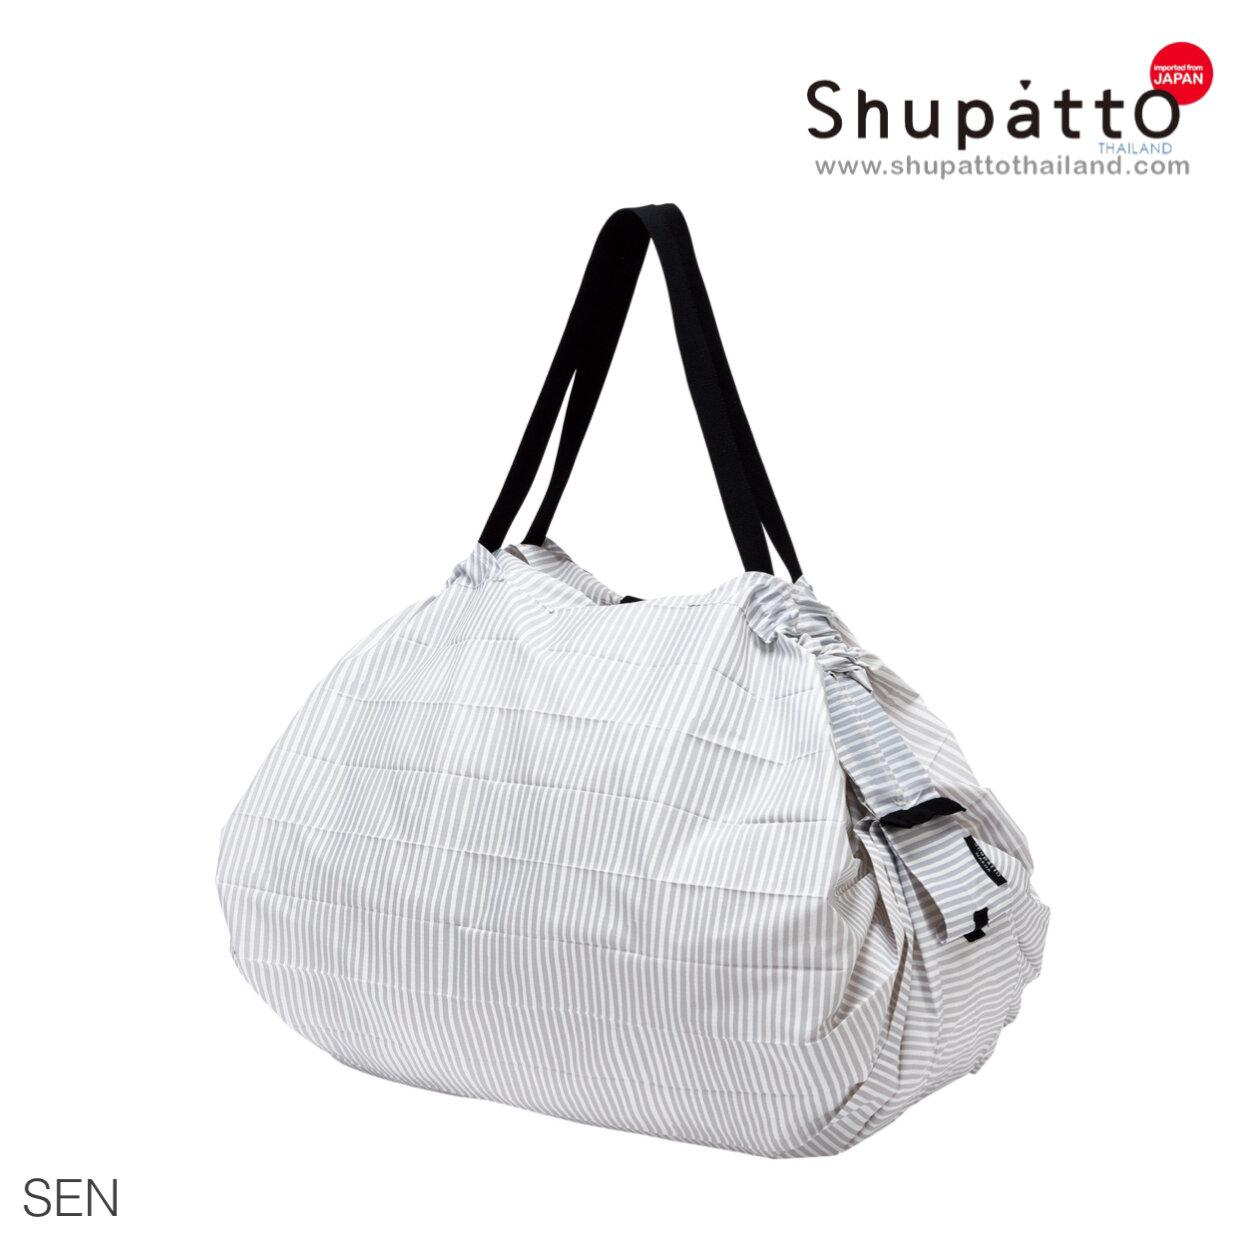 Shupatto Compact Bag - Tote Large - Sen - white/gray